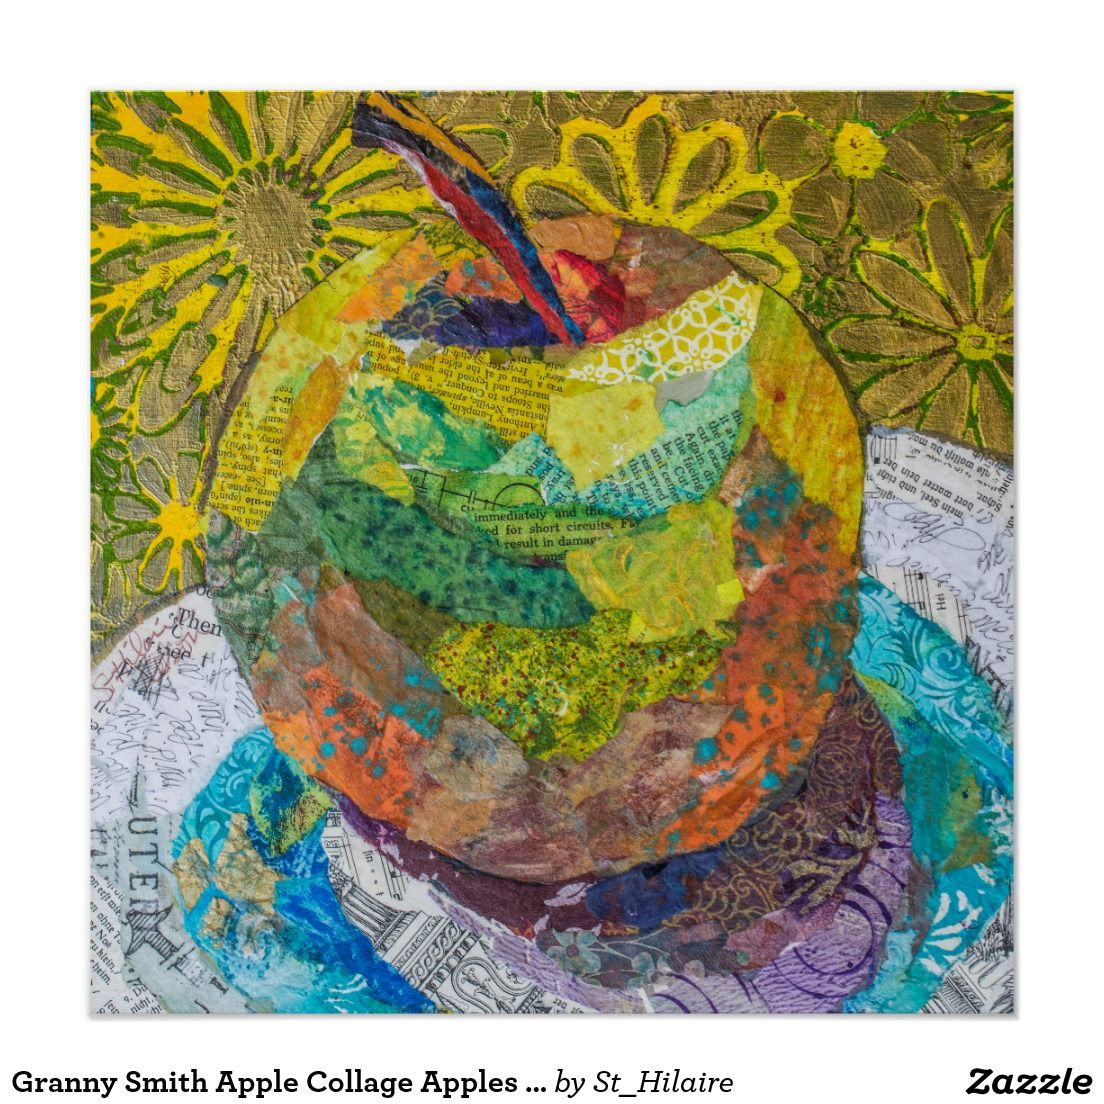 Granny Smith Apple Collage Apples Fruit Plate Poster Art